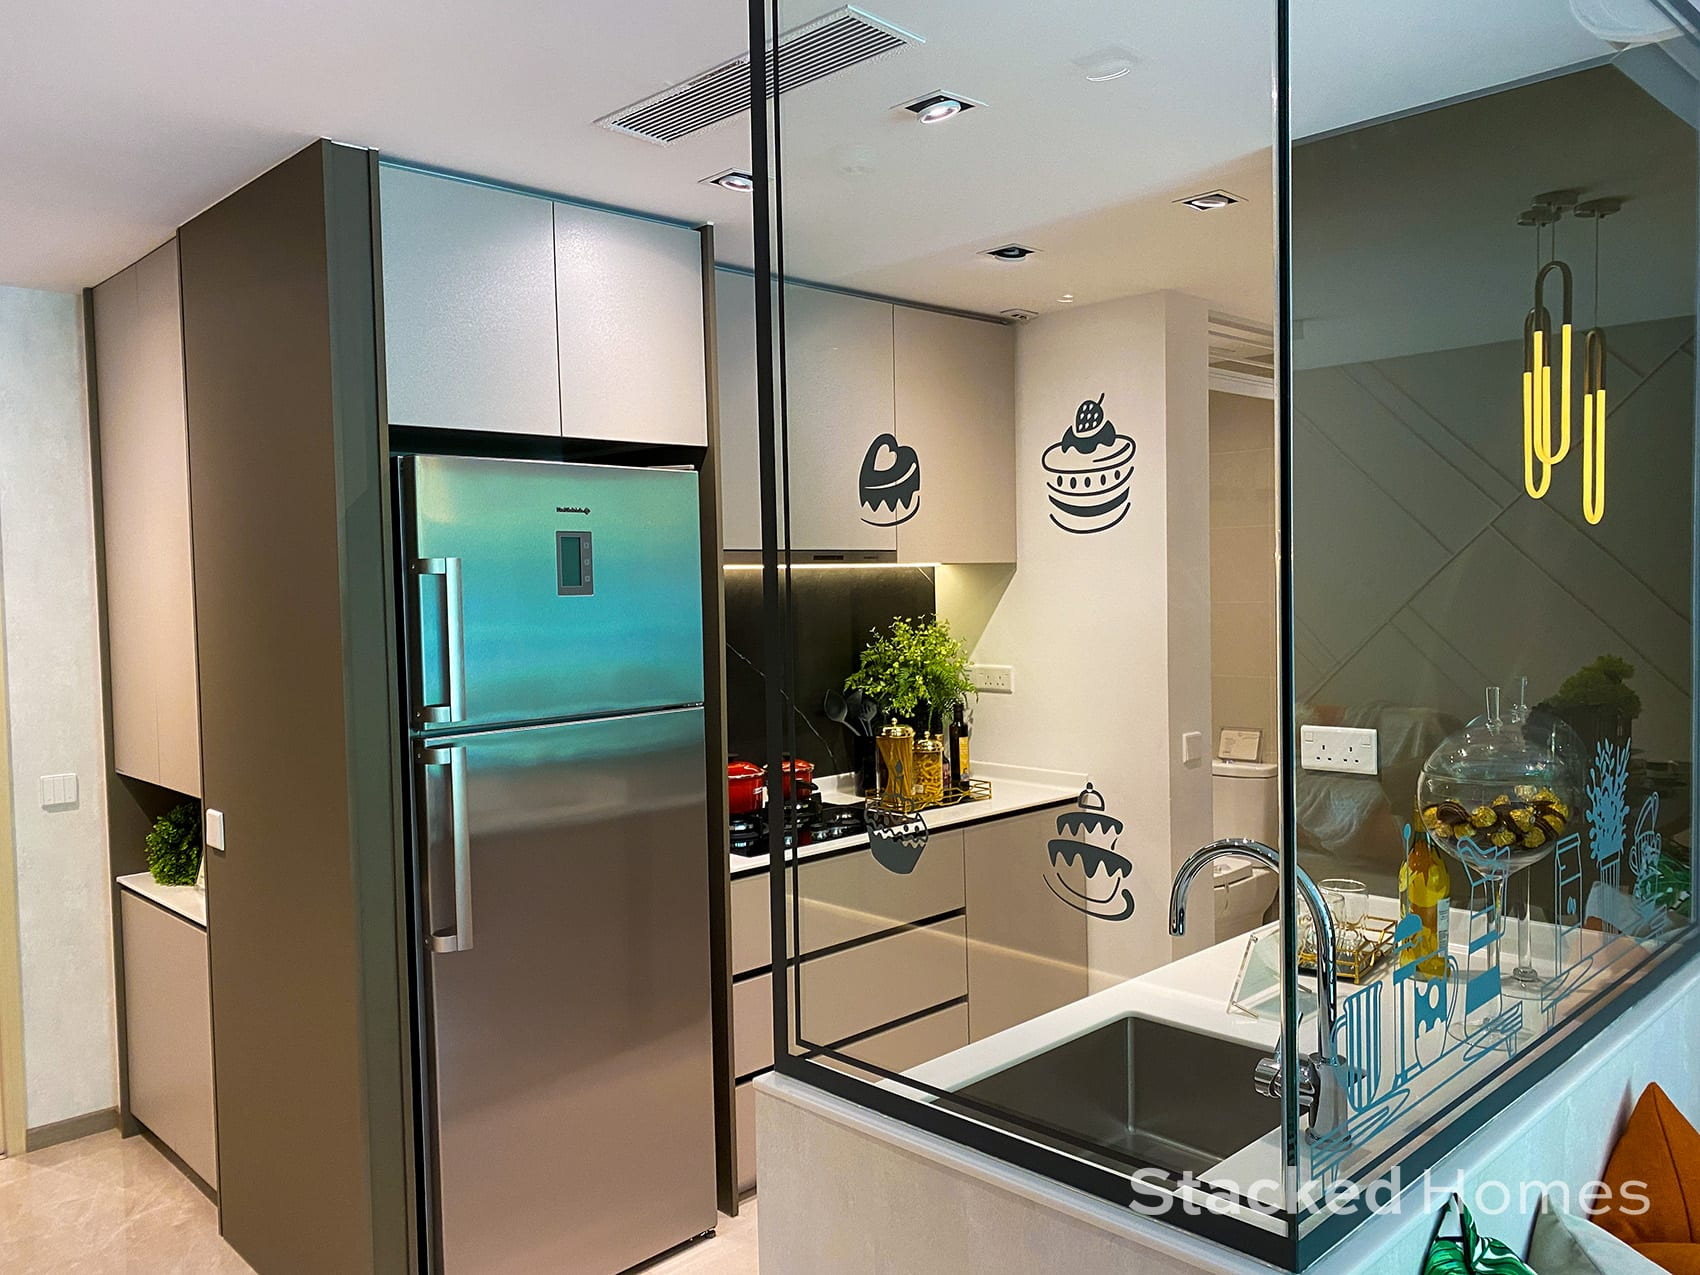 Sengkang Grand Residences 3 Bedroom Premium kitchen view